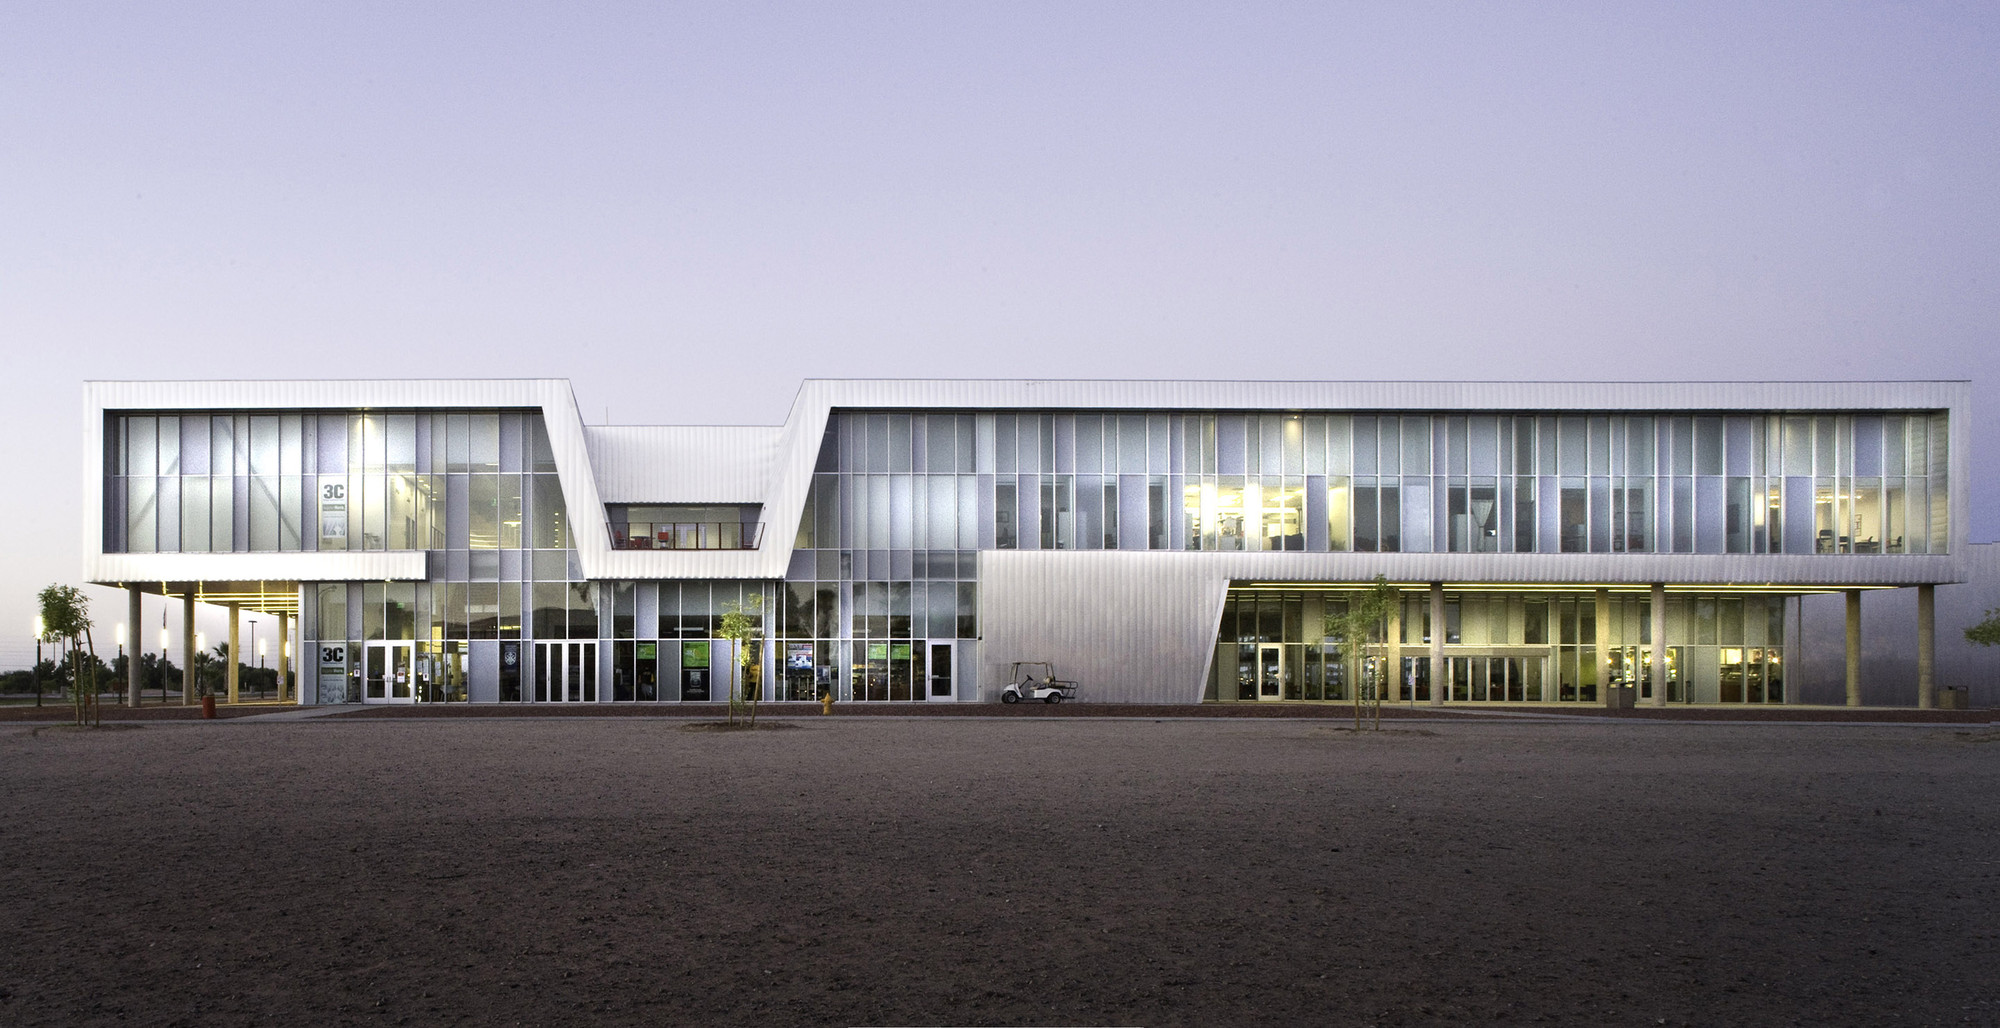 Arizona western college community building and science for Architecture colleges